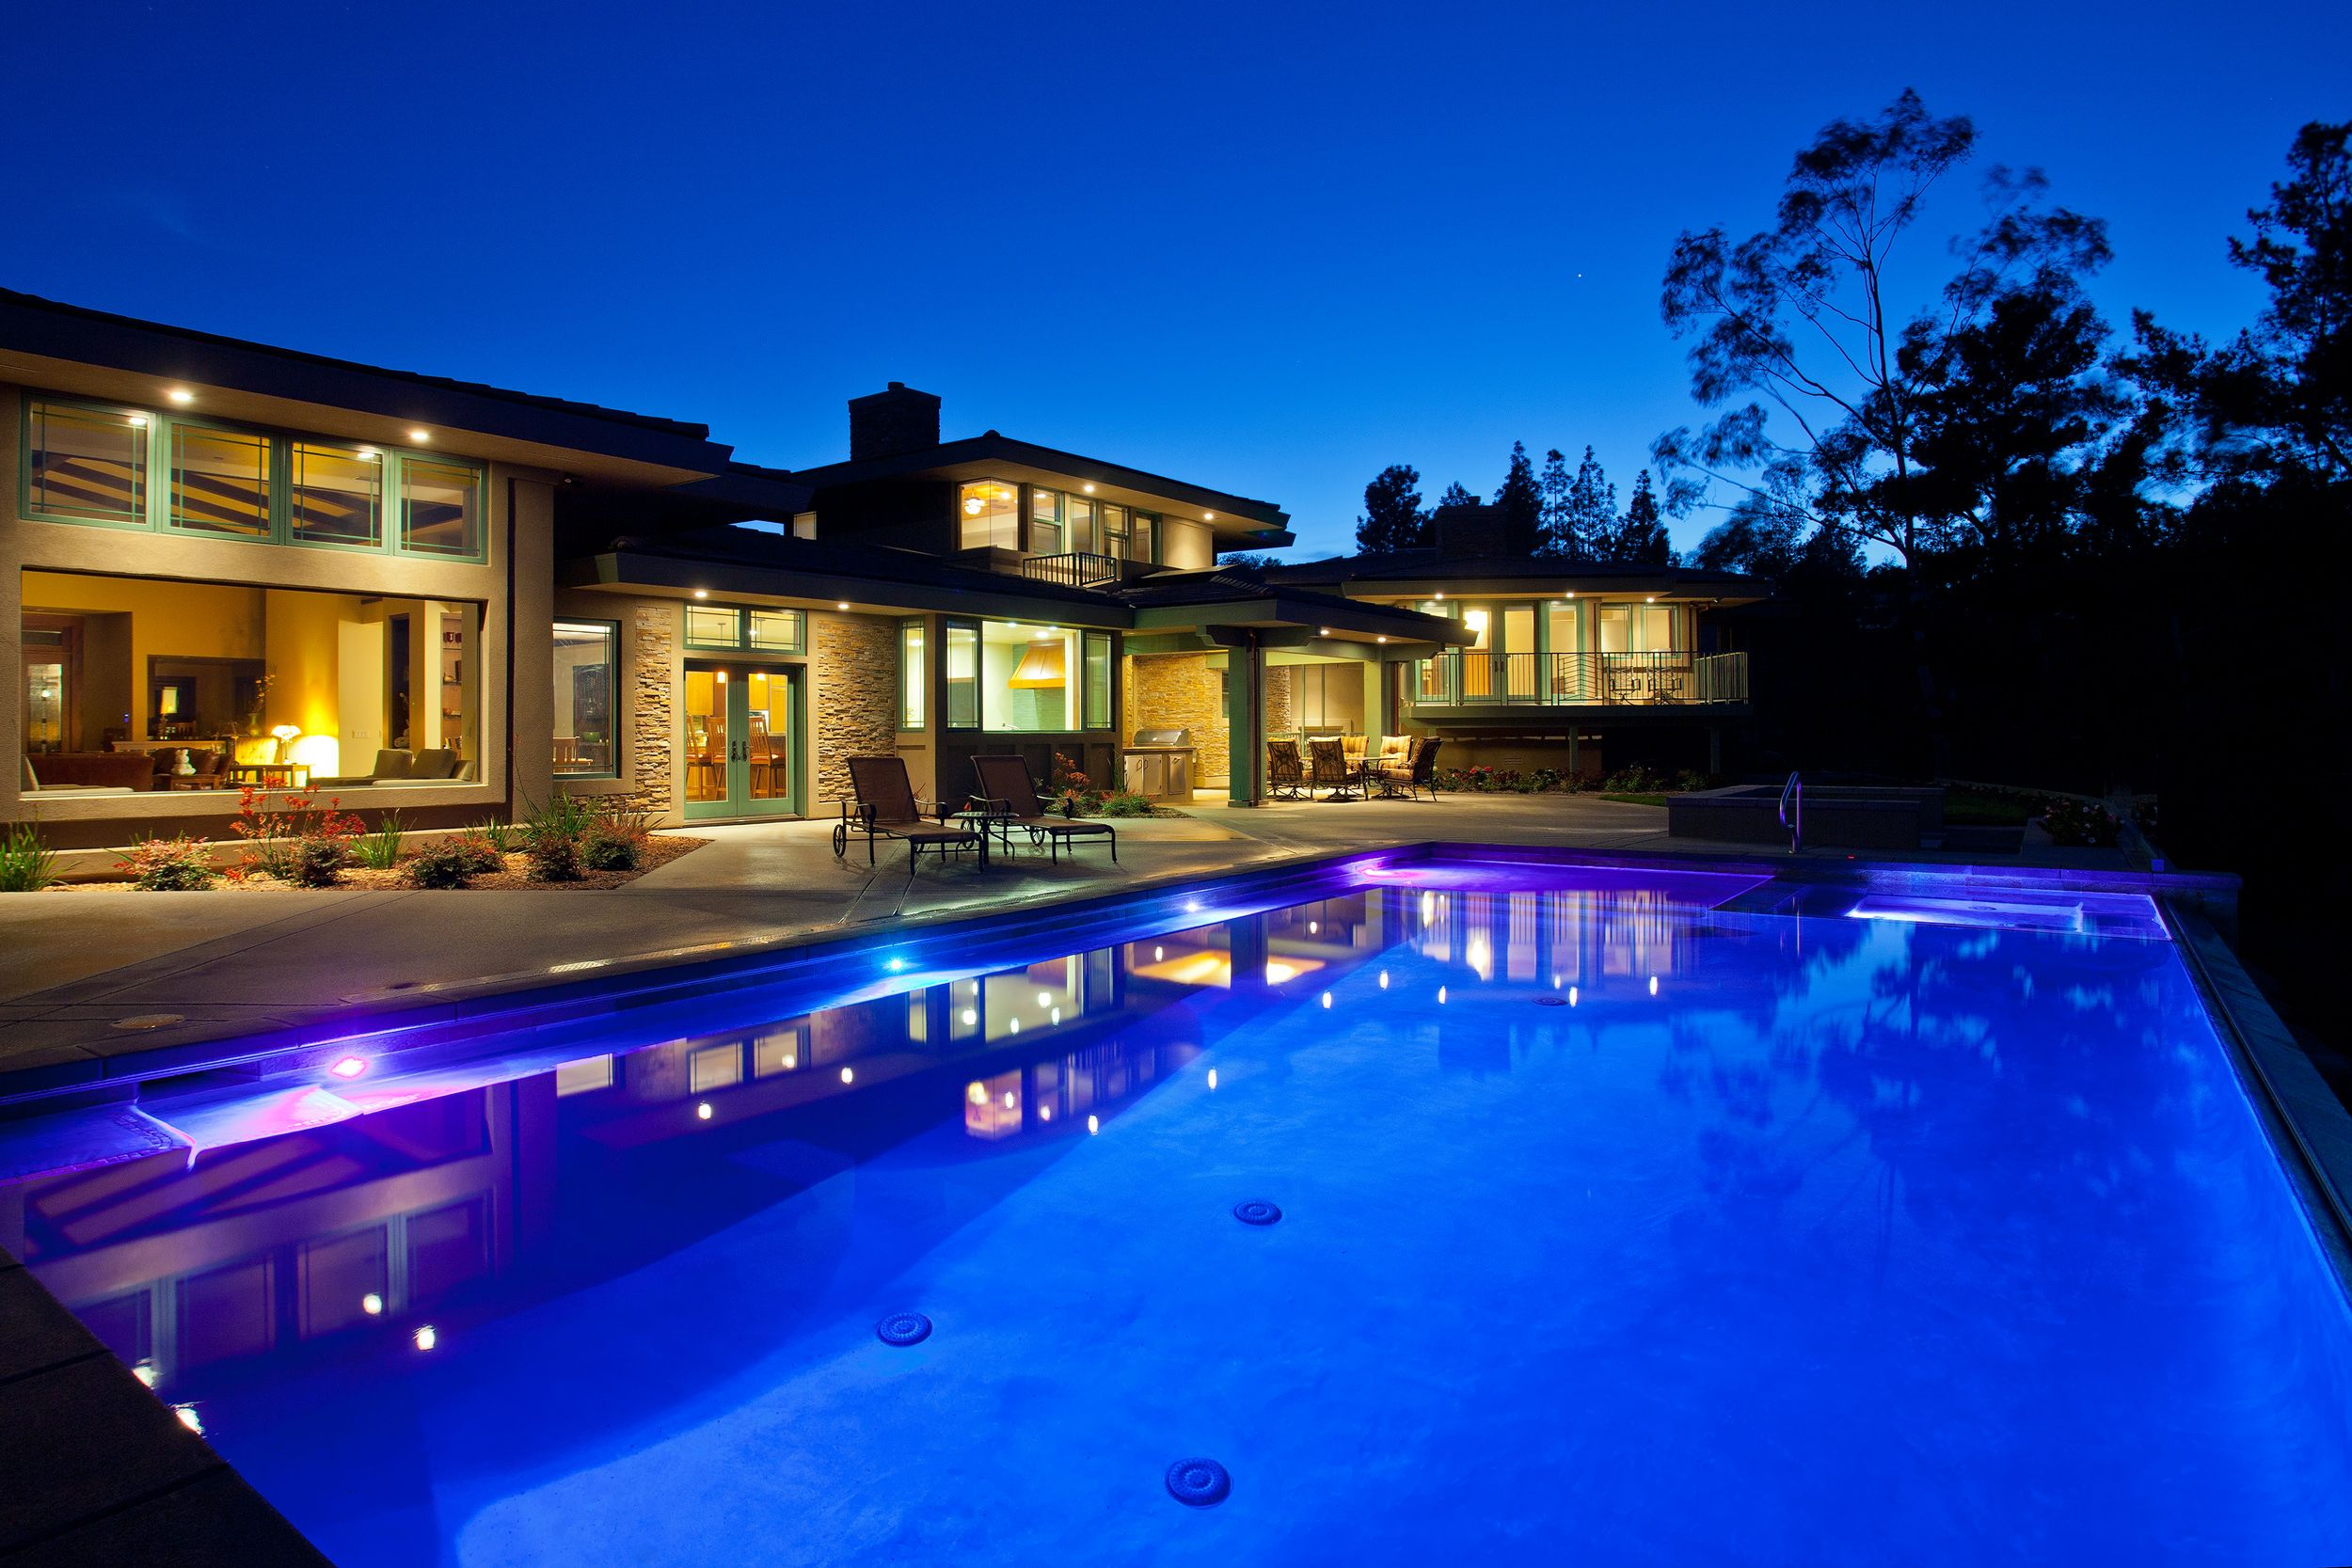 At Night The Pool Comes Alive With Color Reflecting The